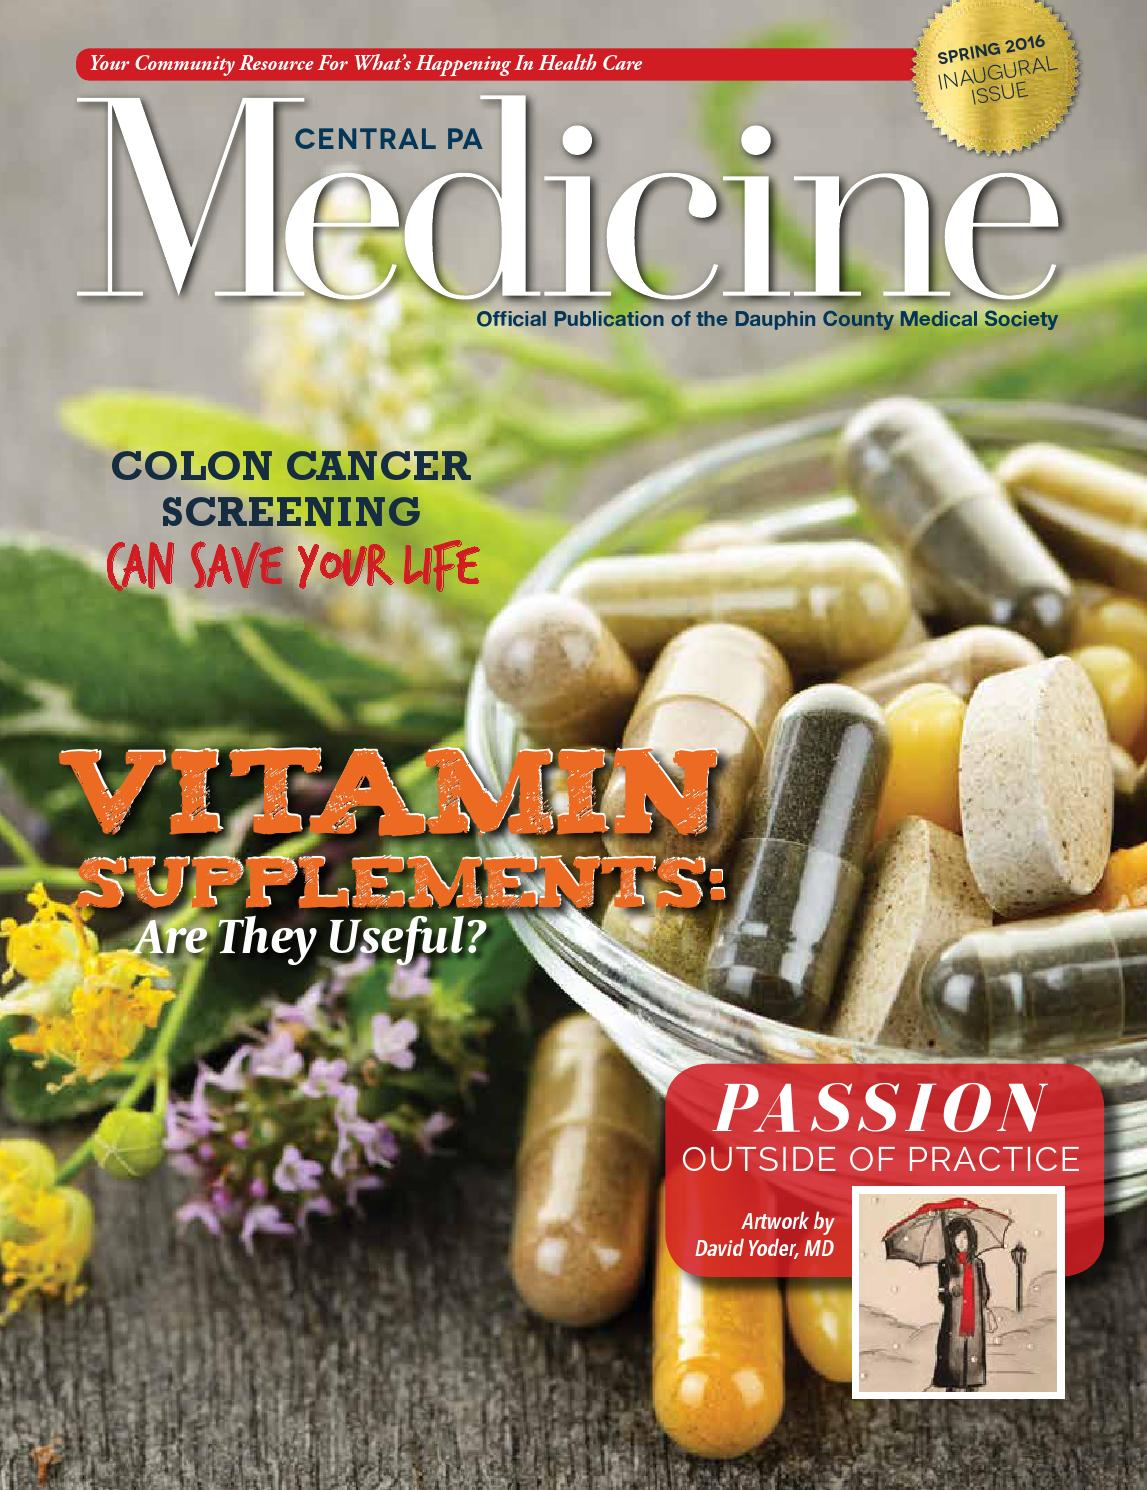 Central PA Medicine Spring 2016 by Hoffmann Publishing Group